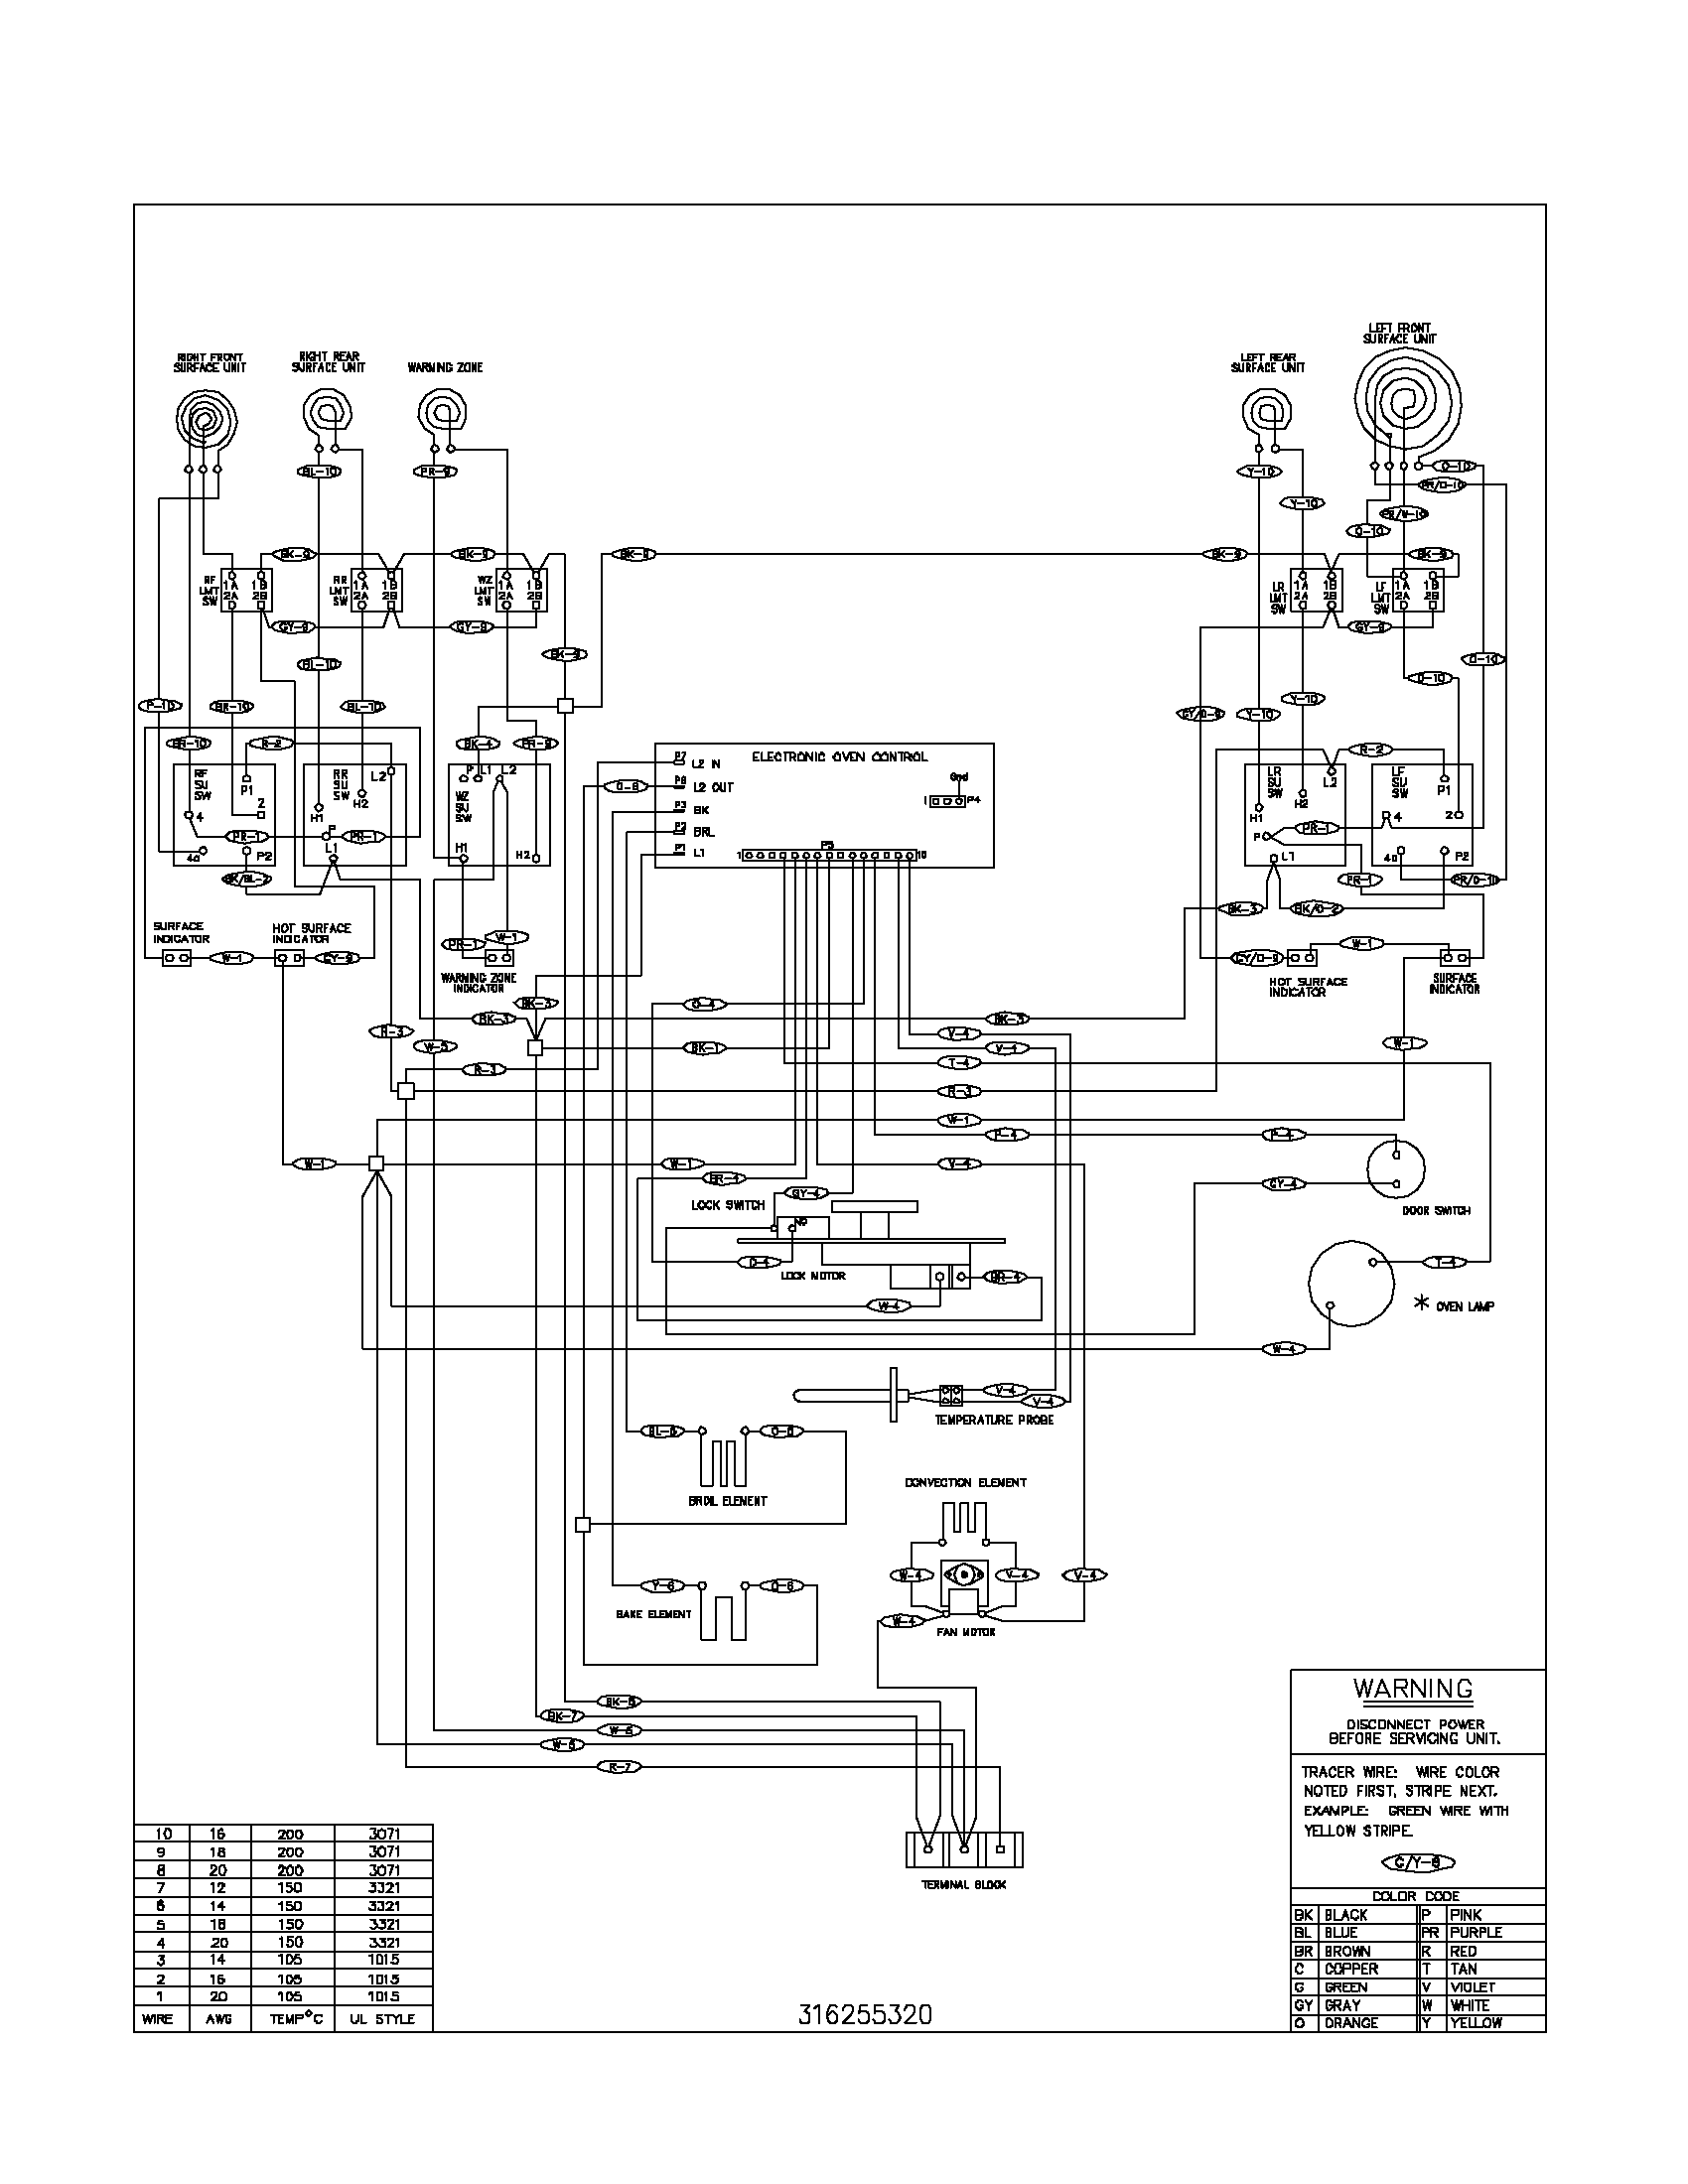 Wiring Diagram For Ge Stove Burners - Wiring Diagram K10 on